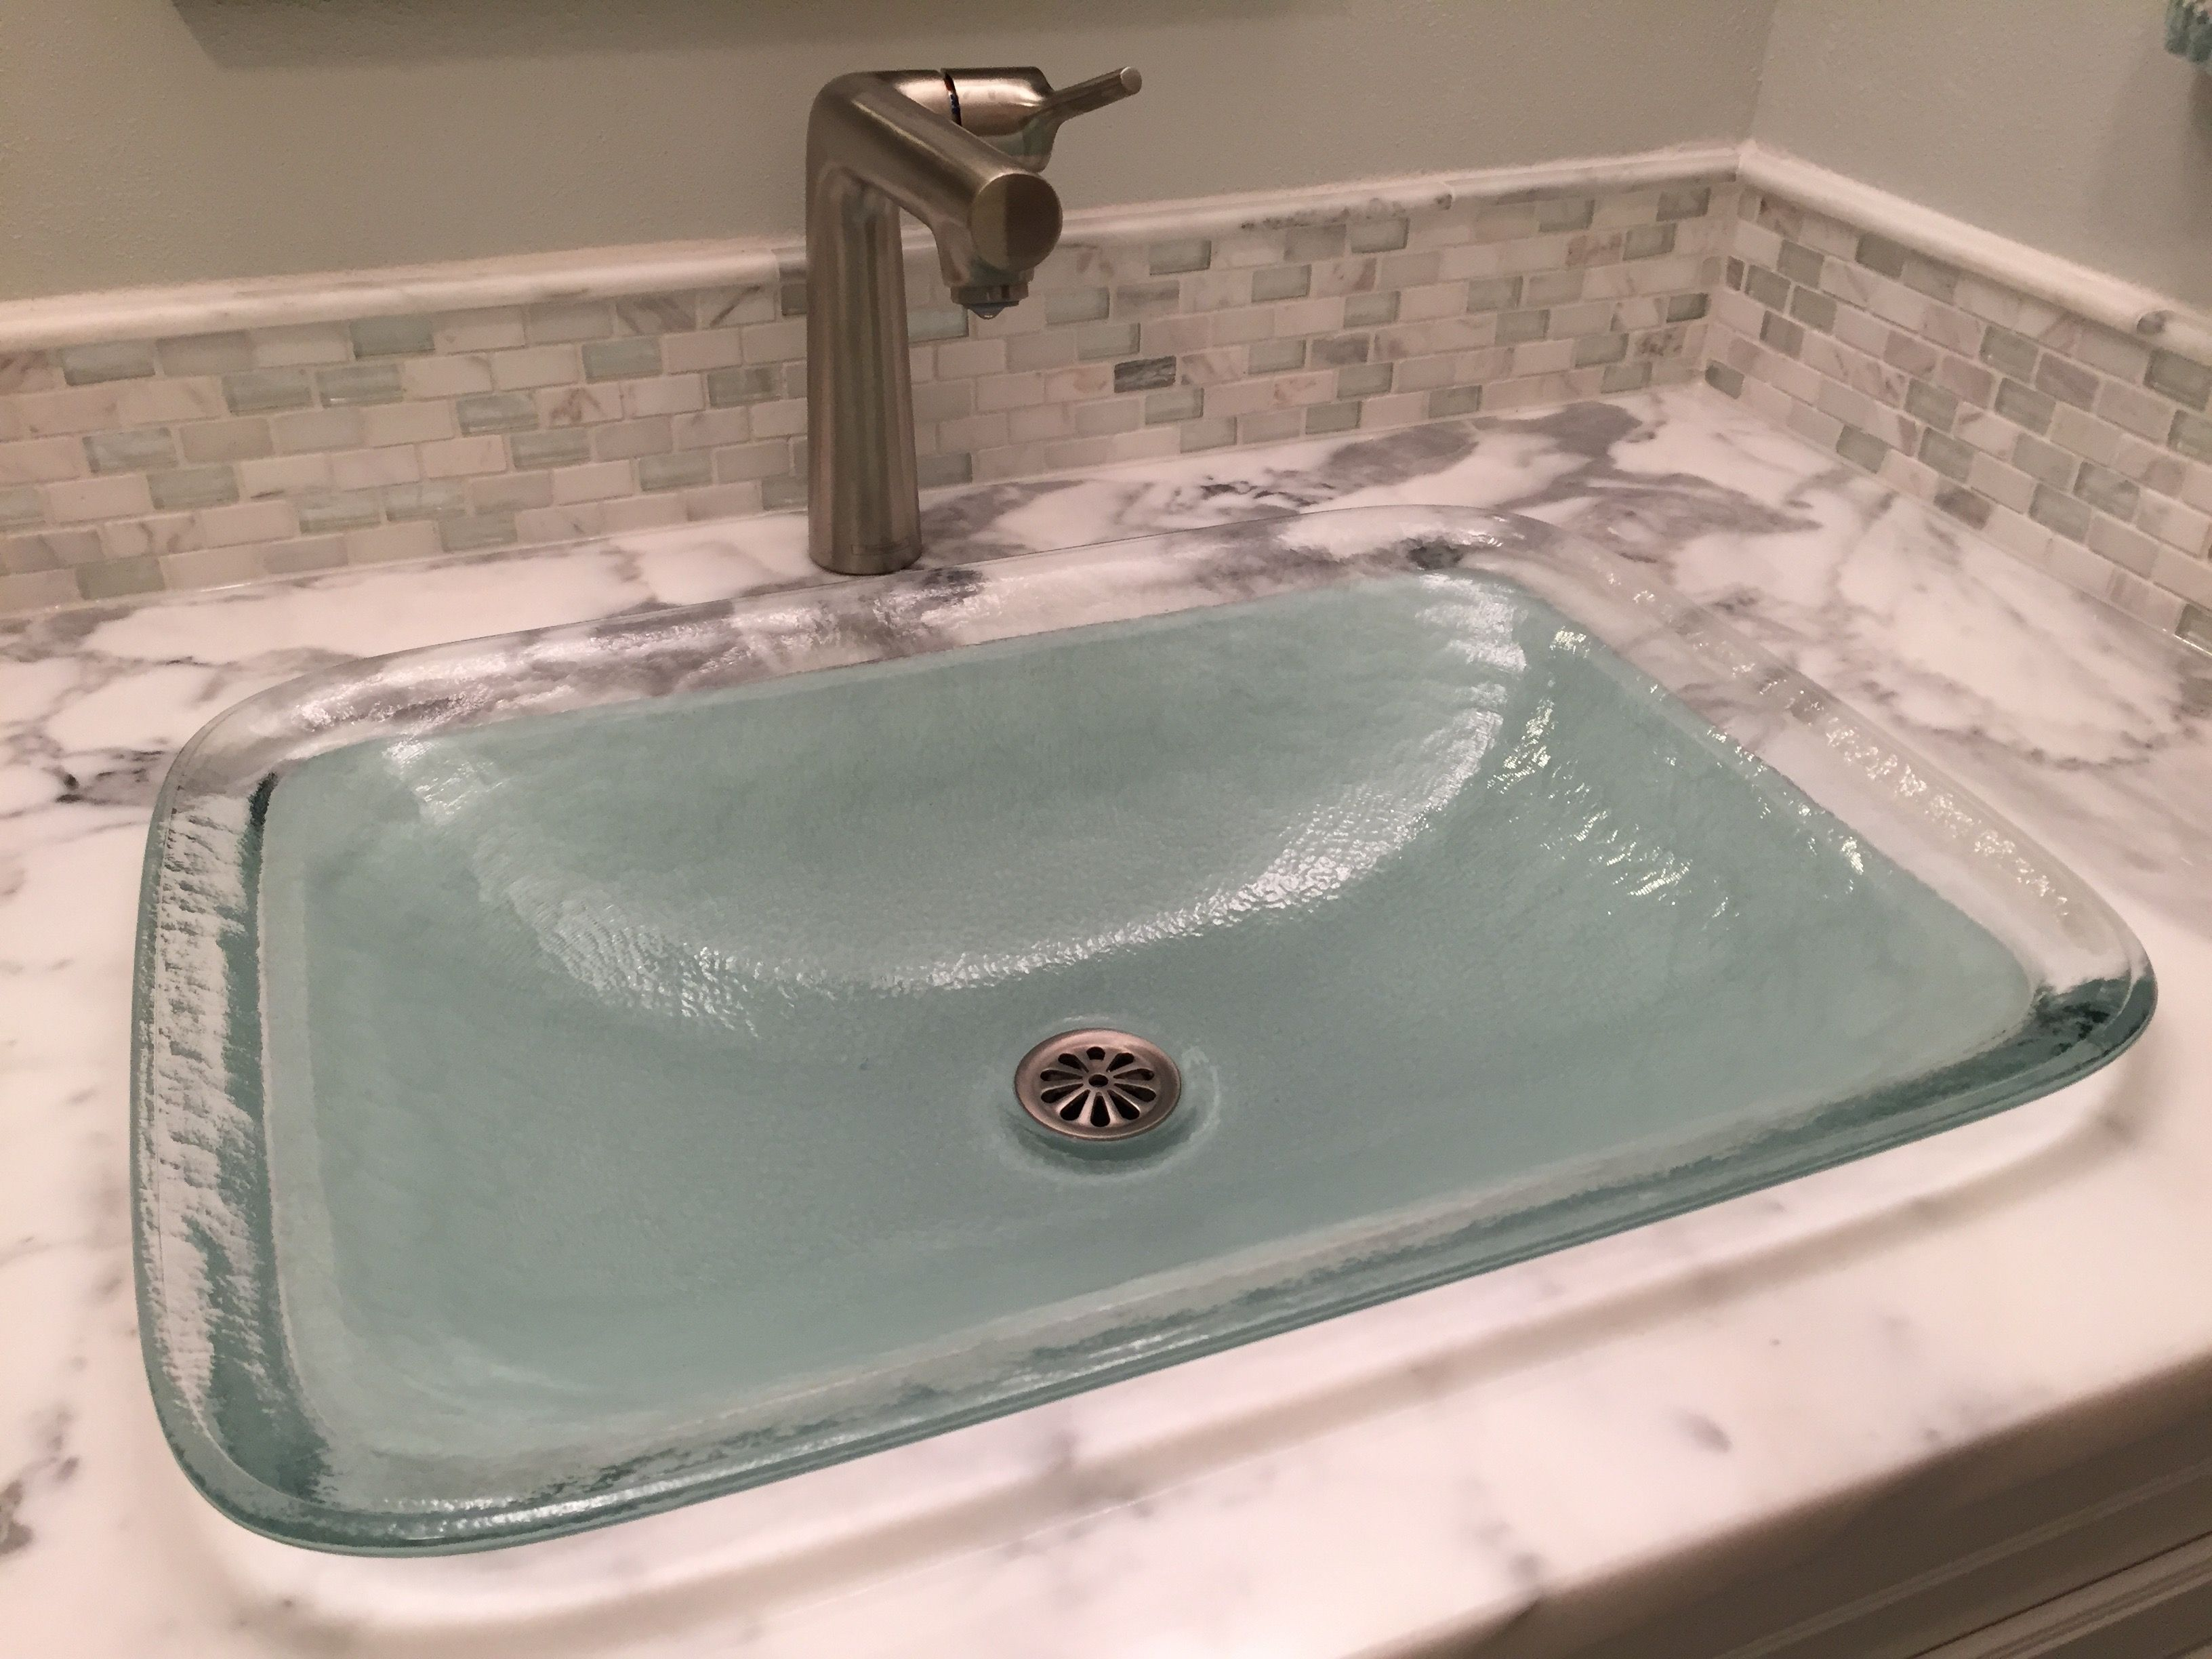 Koehler sink and drain Hans Grohe faucet Statuary Marble vanity